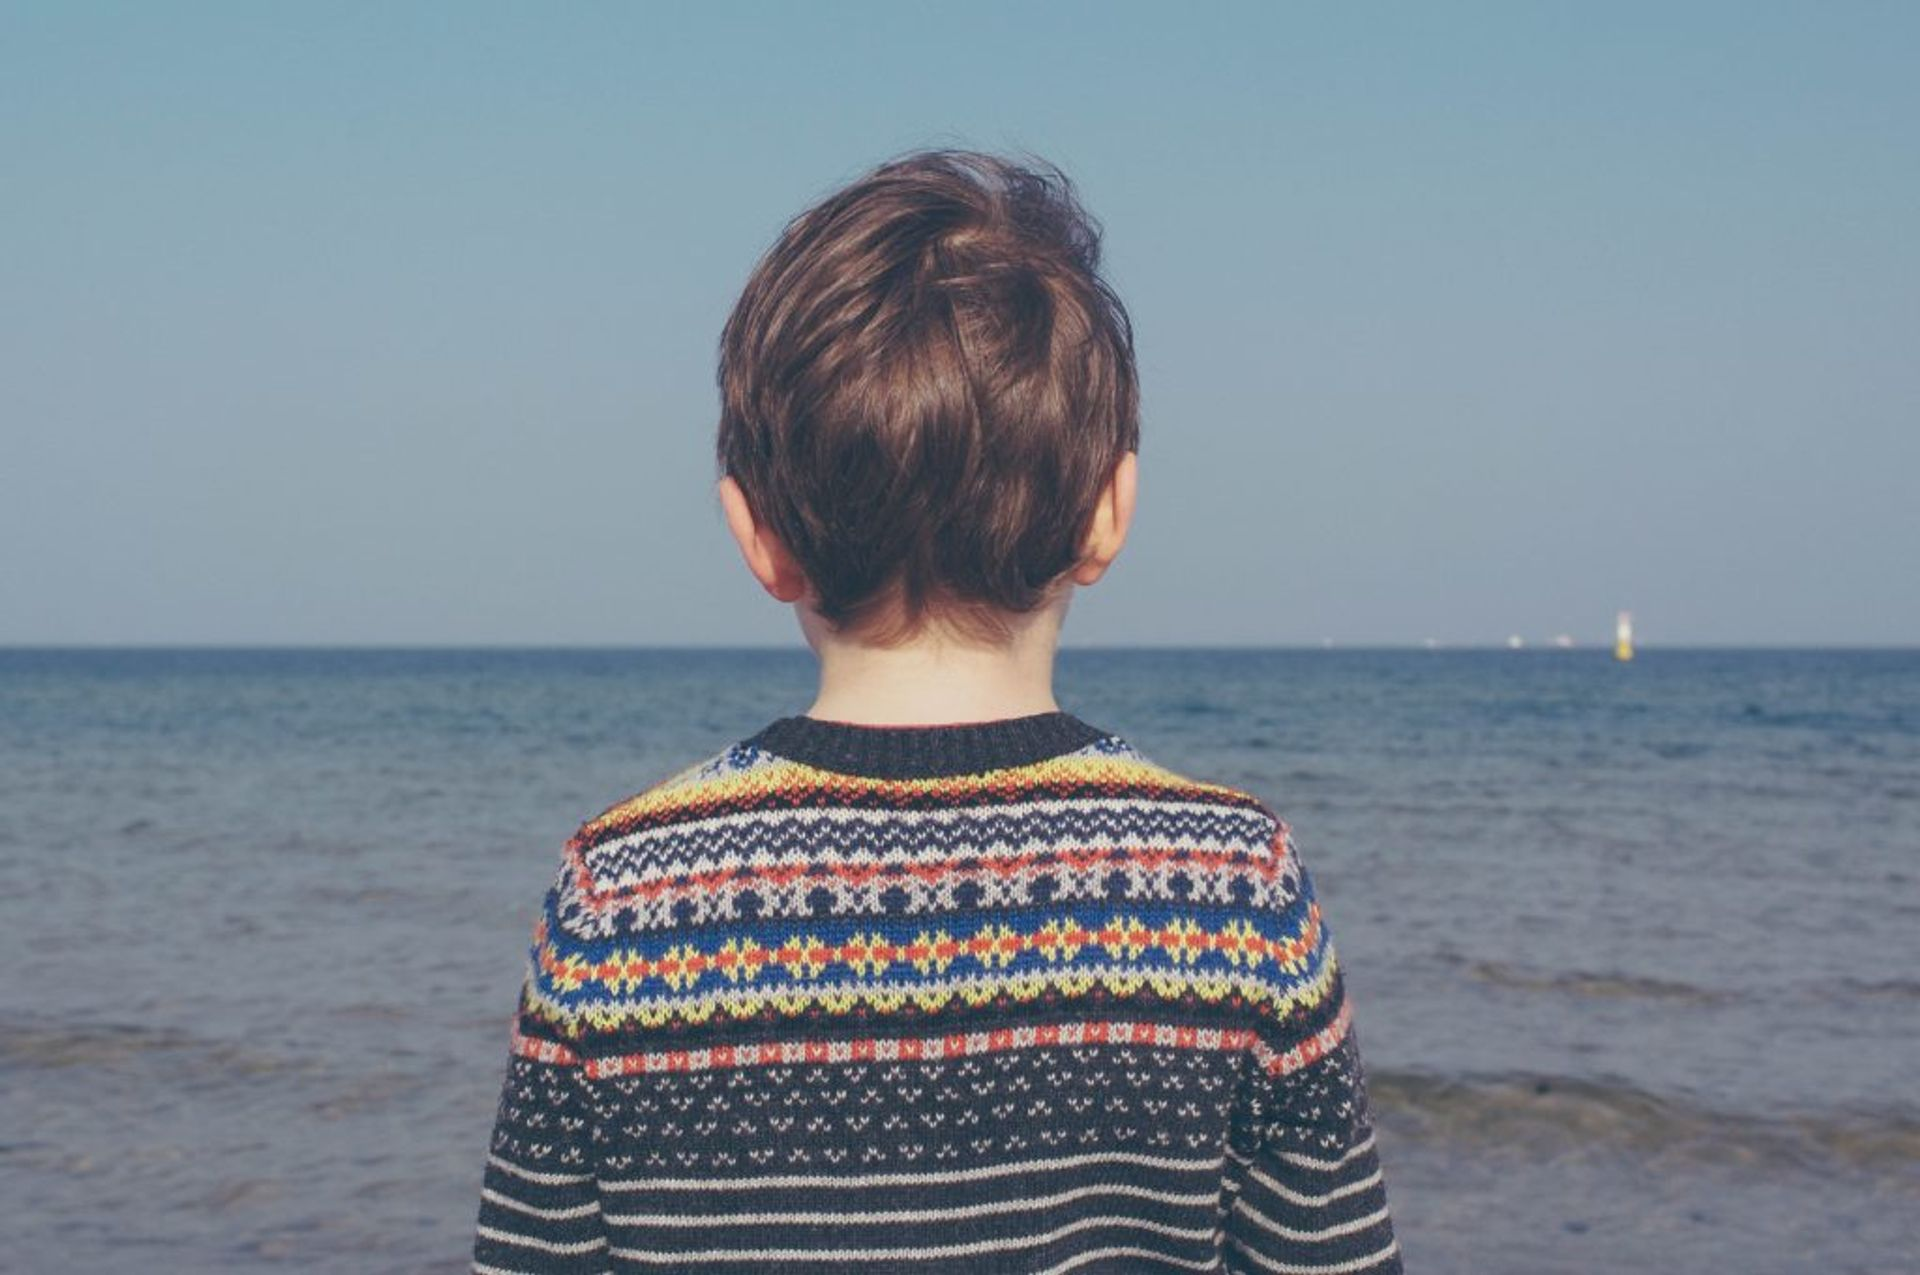 Close-up of a child looking at the ocean.